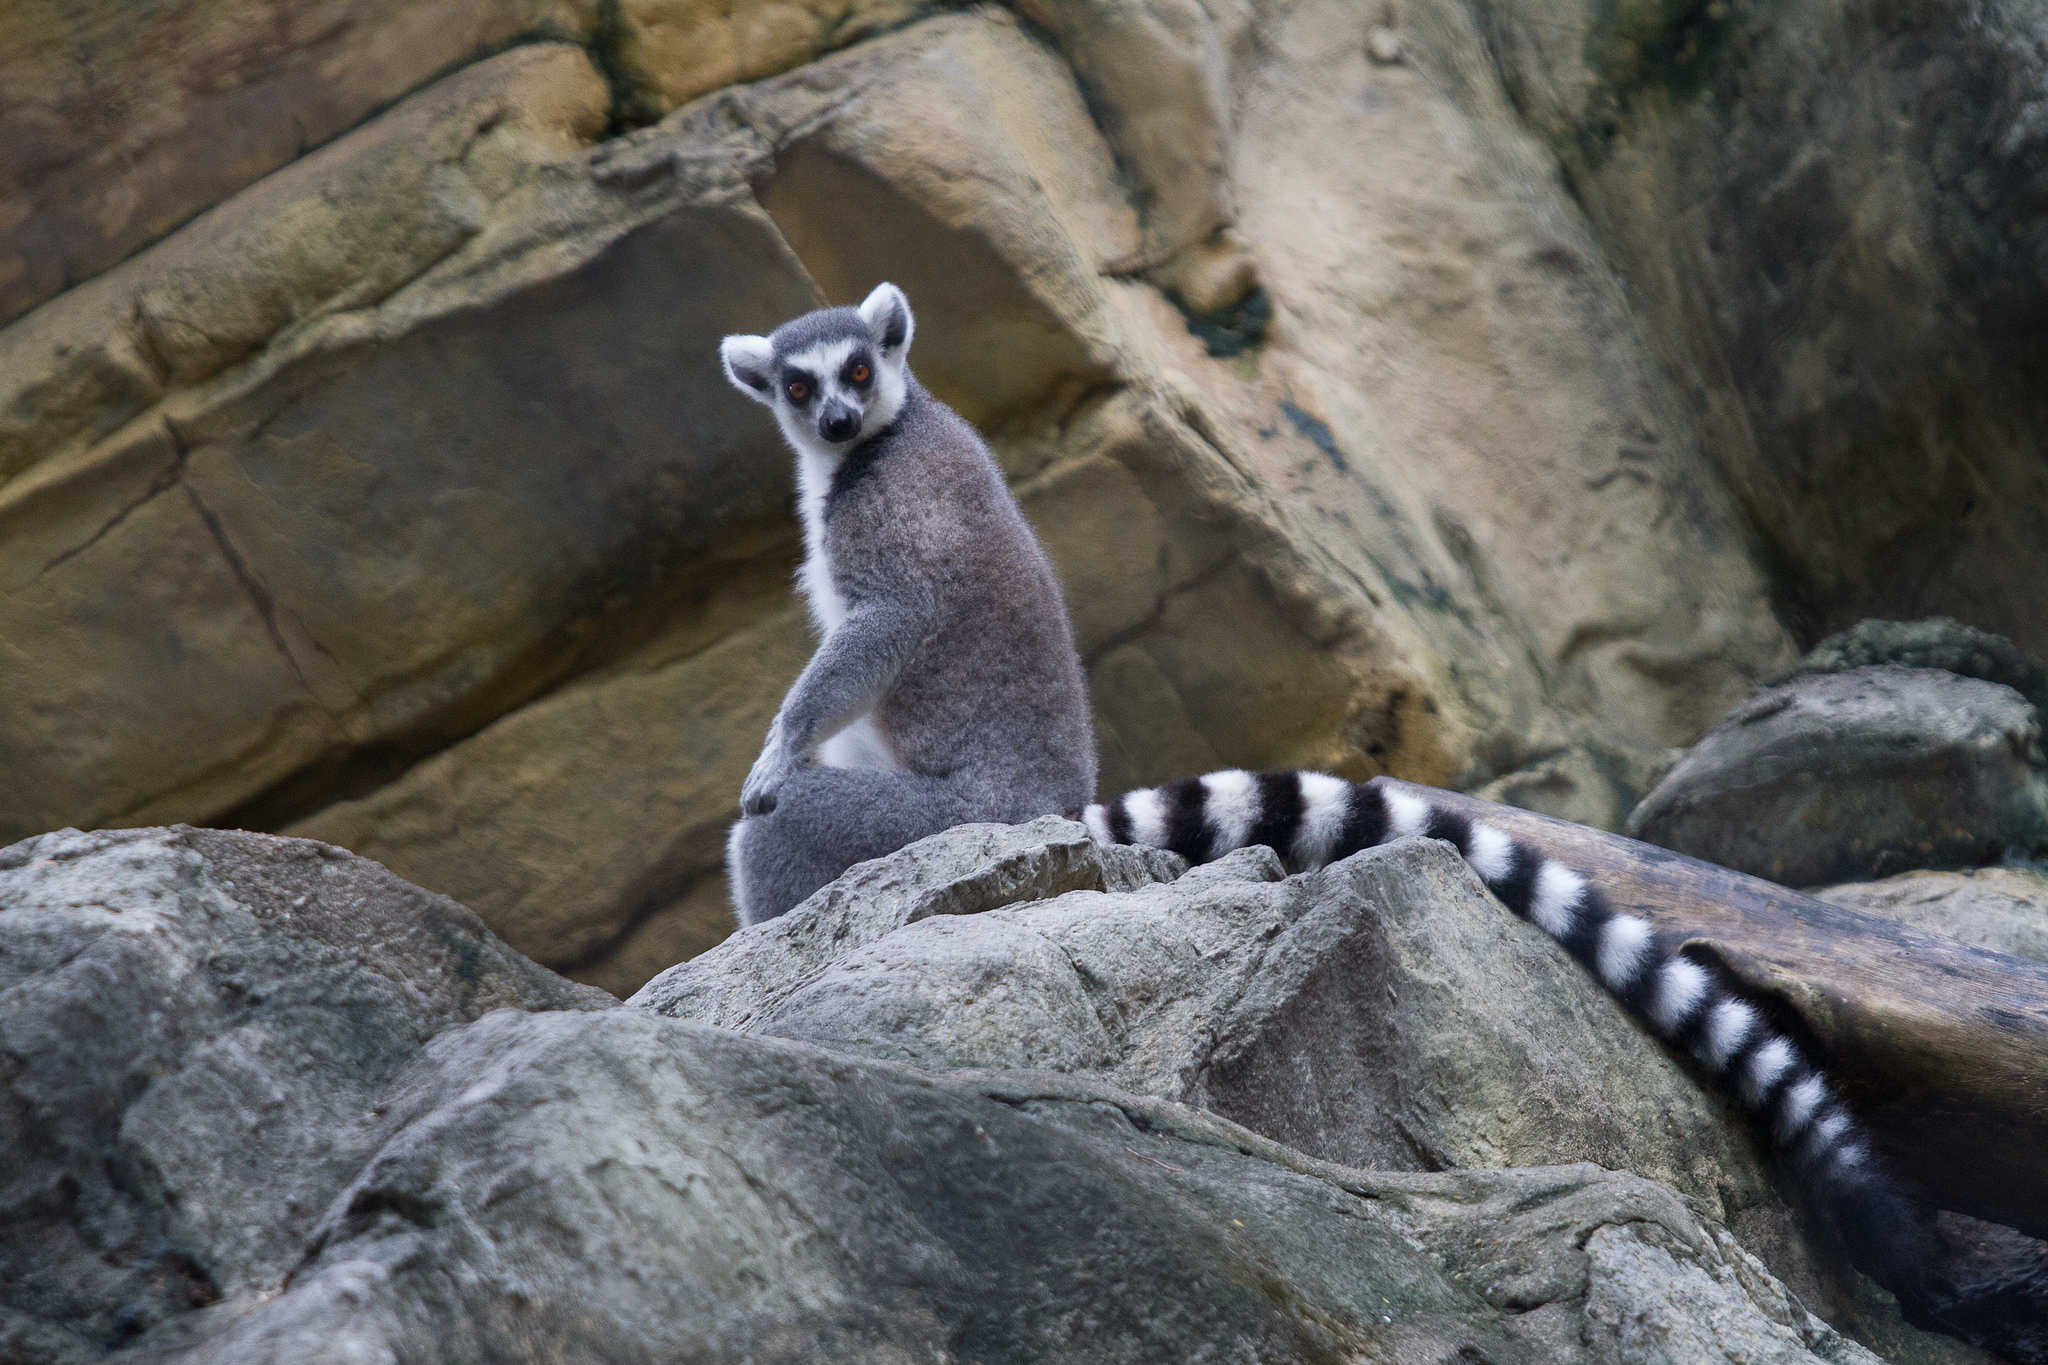 A ring-tailed lemur at the Hong Kong Zoological and Botanical Gardens | TimOve/CC BY 2.0/Flickr